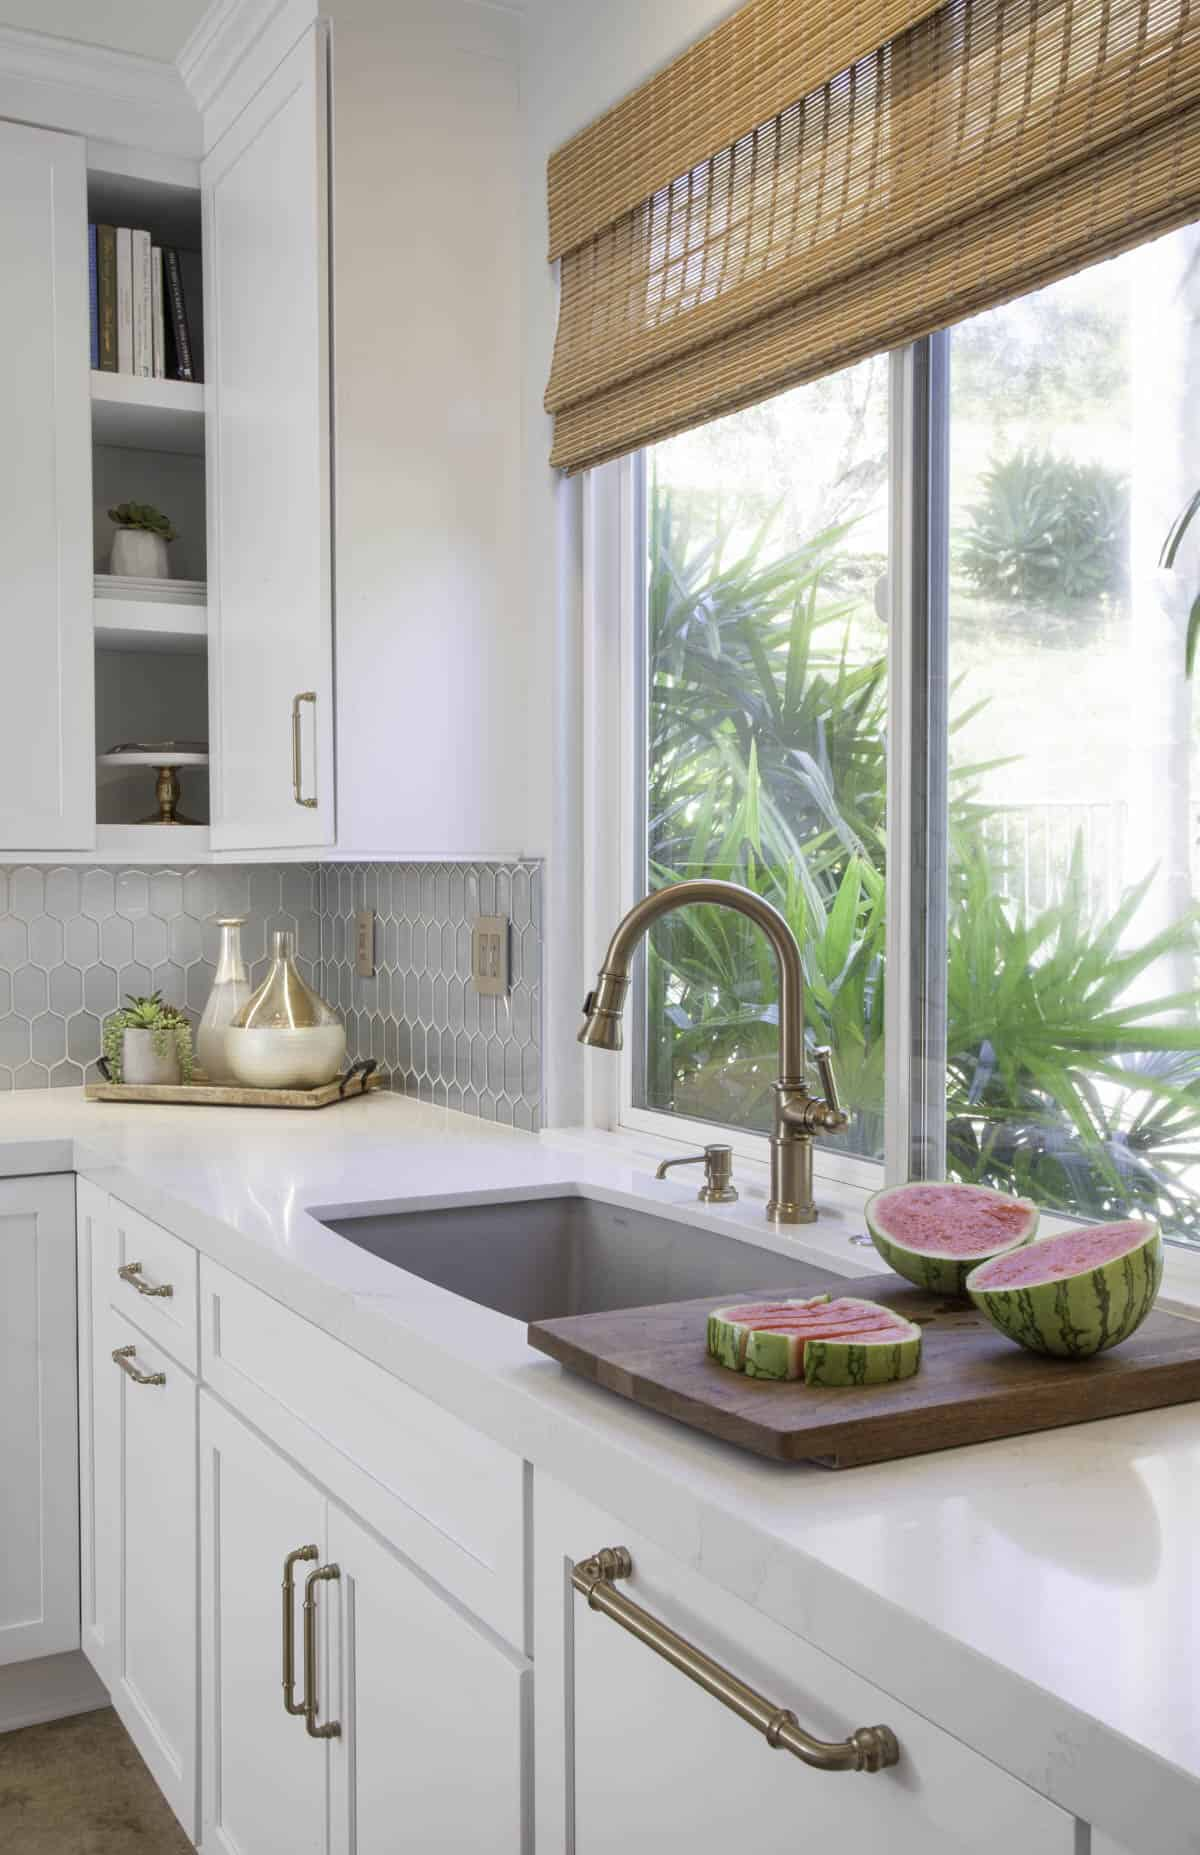 White kitchen with gold hardware remodel in Palmetto Bay